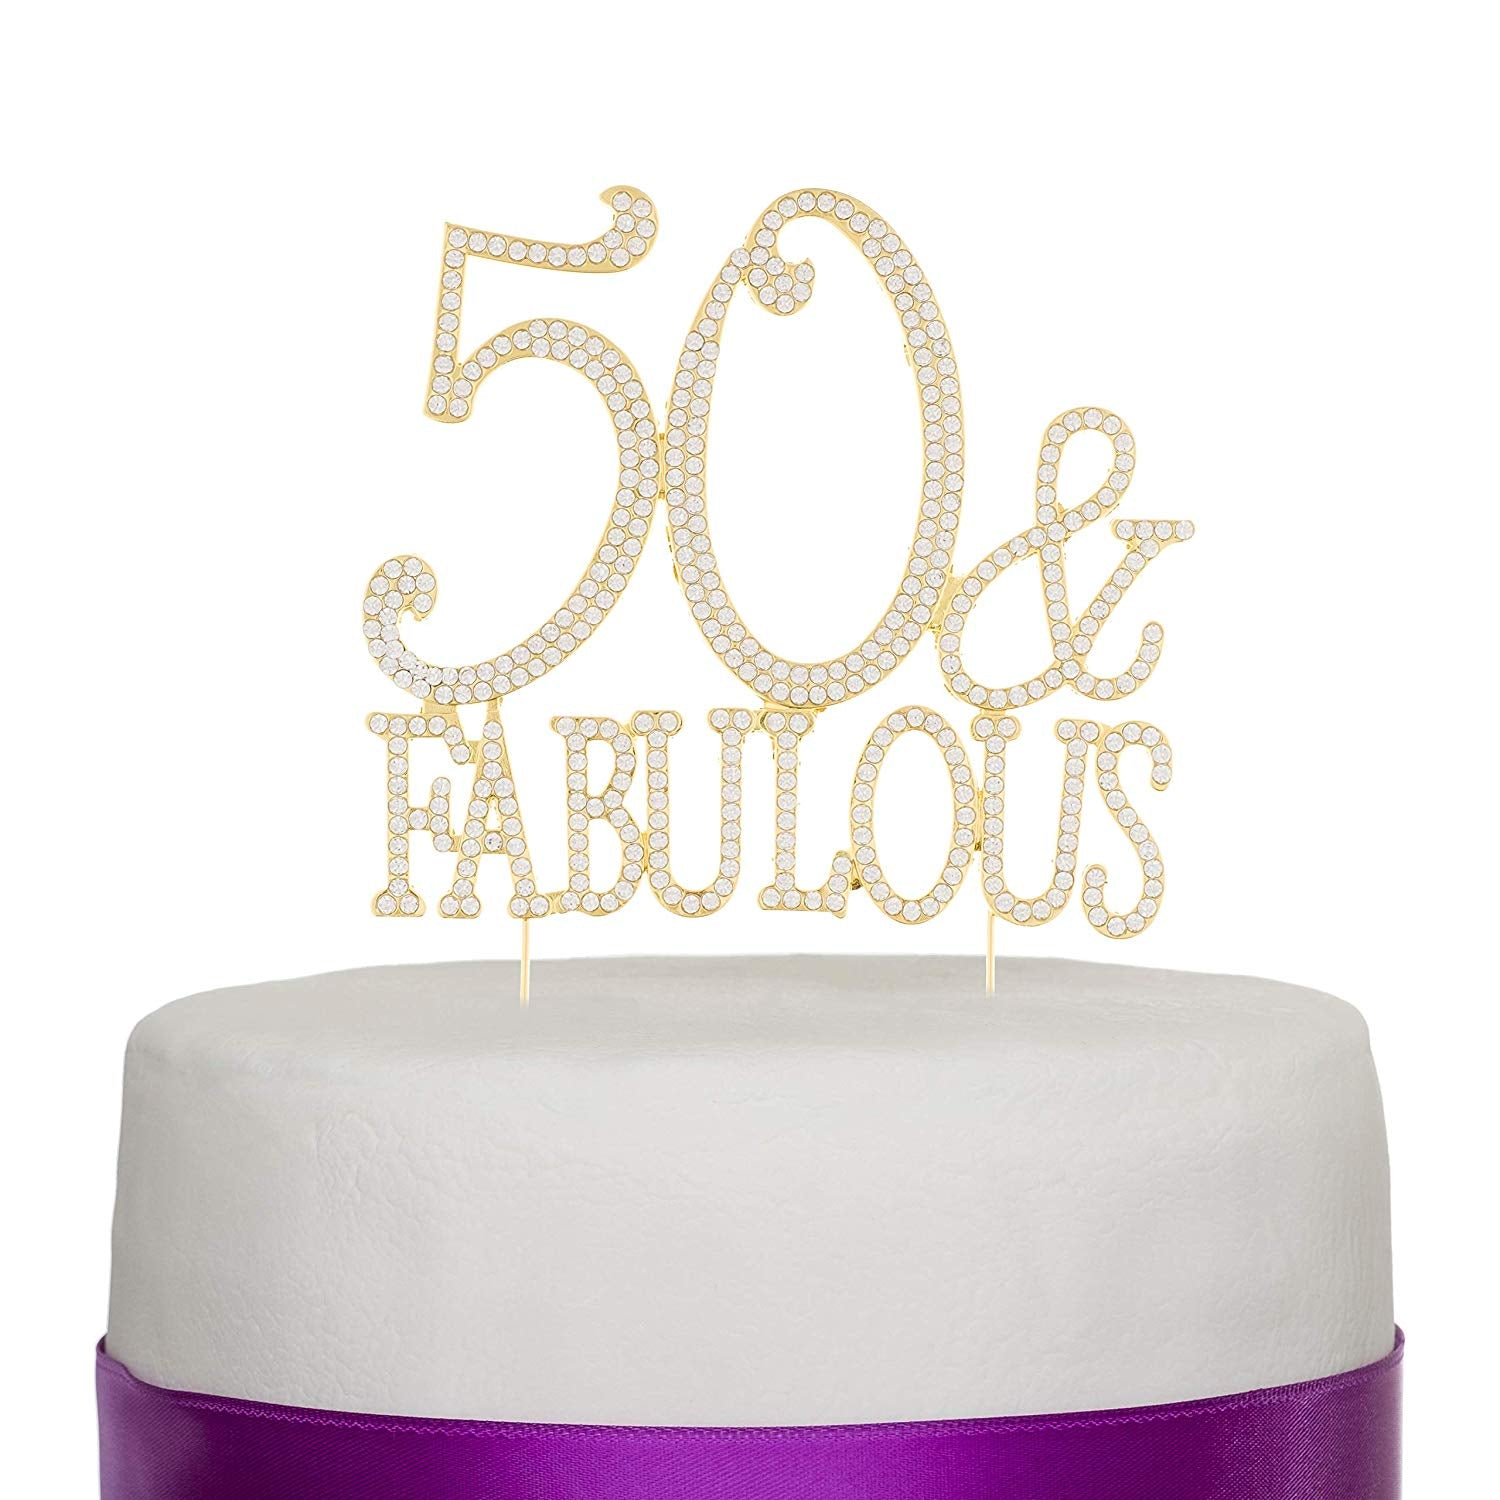 50 & Fabulous Cake Topper - Gold